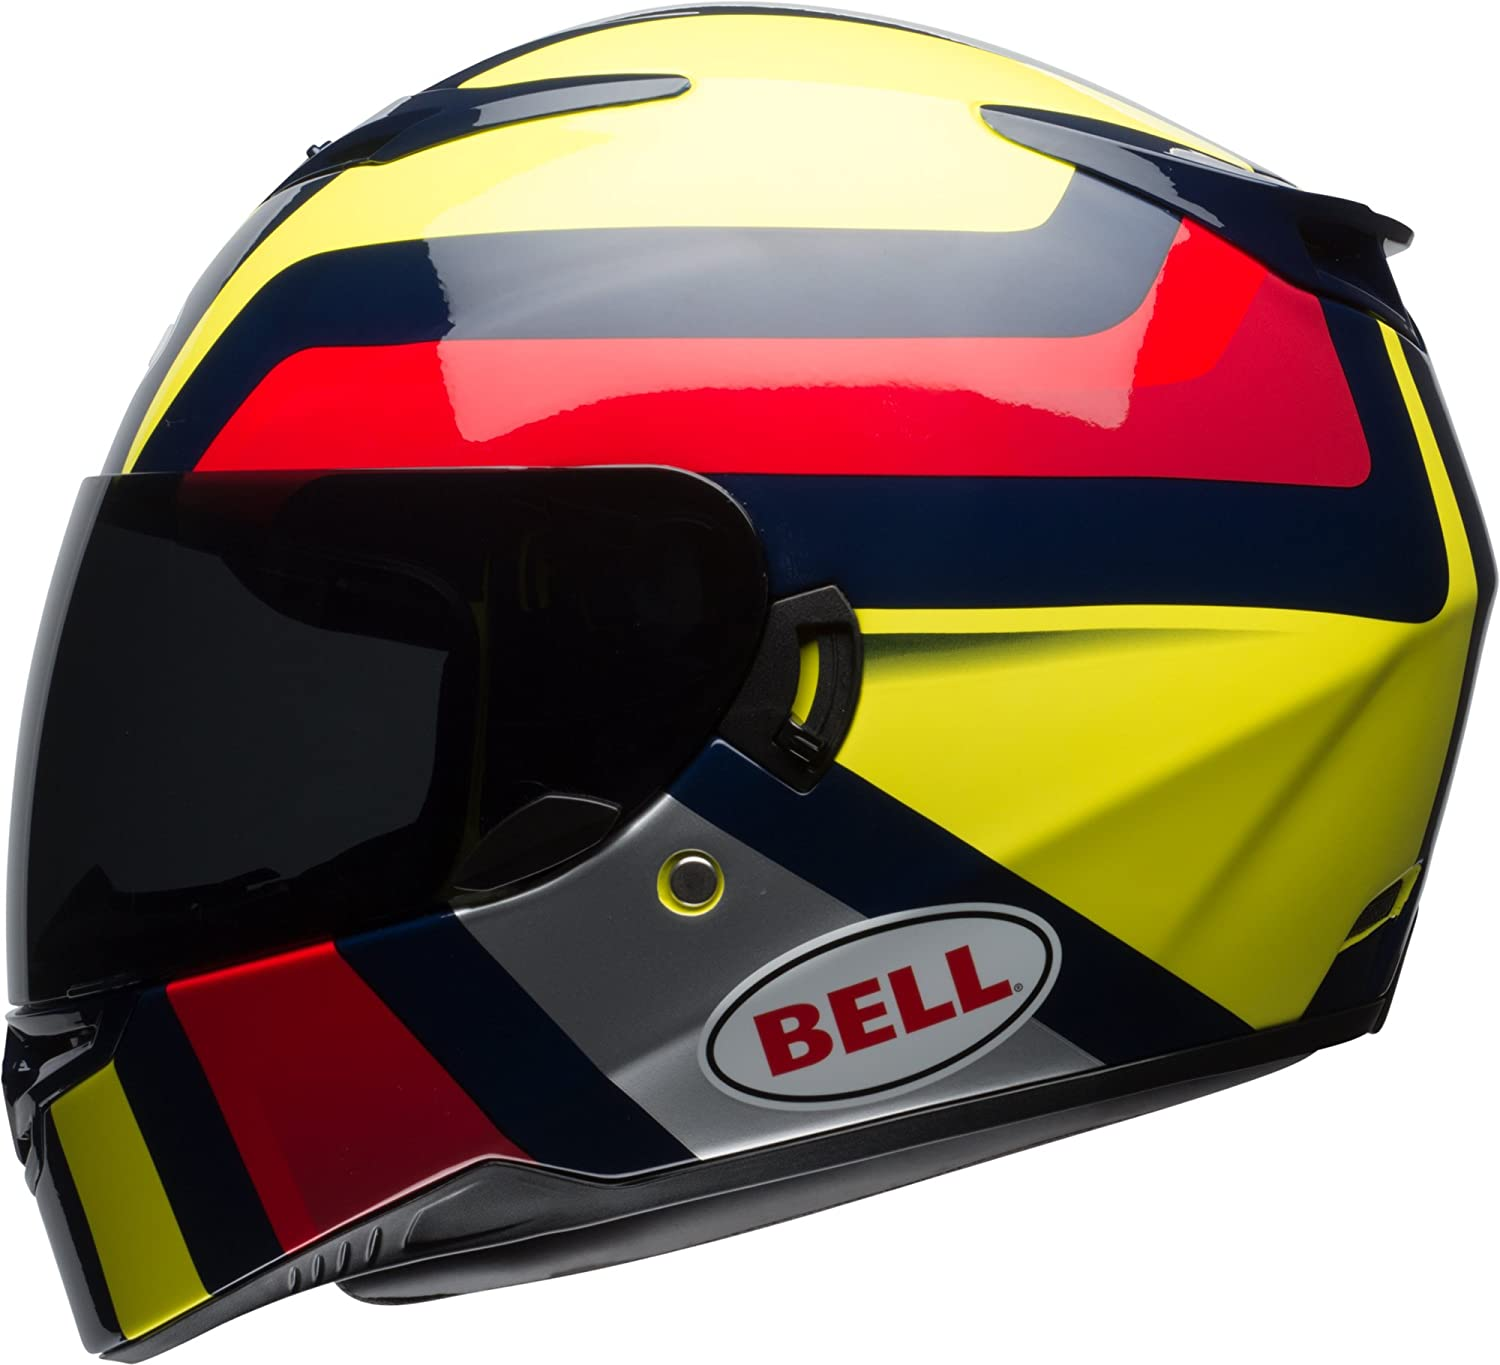 Gloss Hi-Viz Yellow//Navy//Red Empire, Medium Bell RS2 Full-Face Motorcycle Helmet